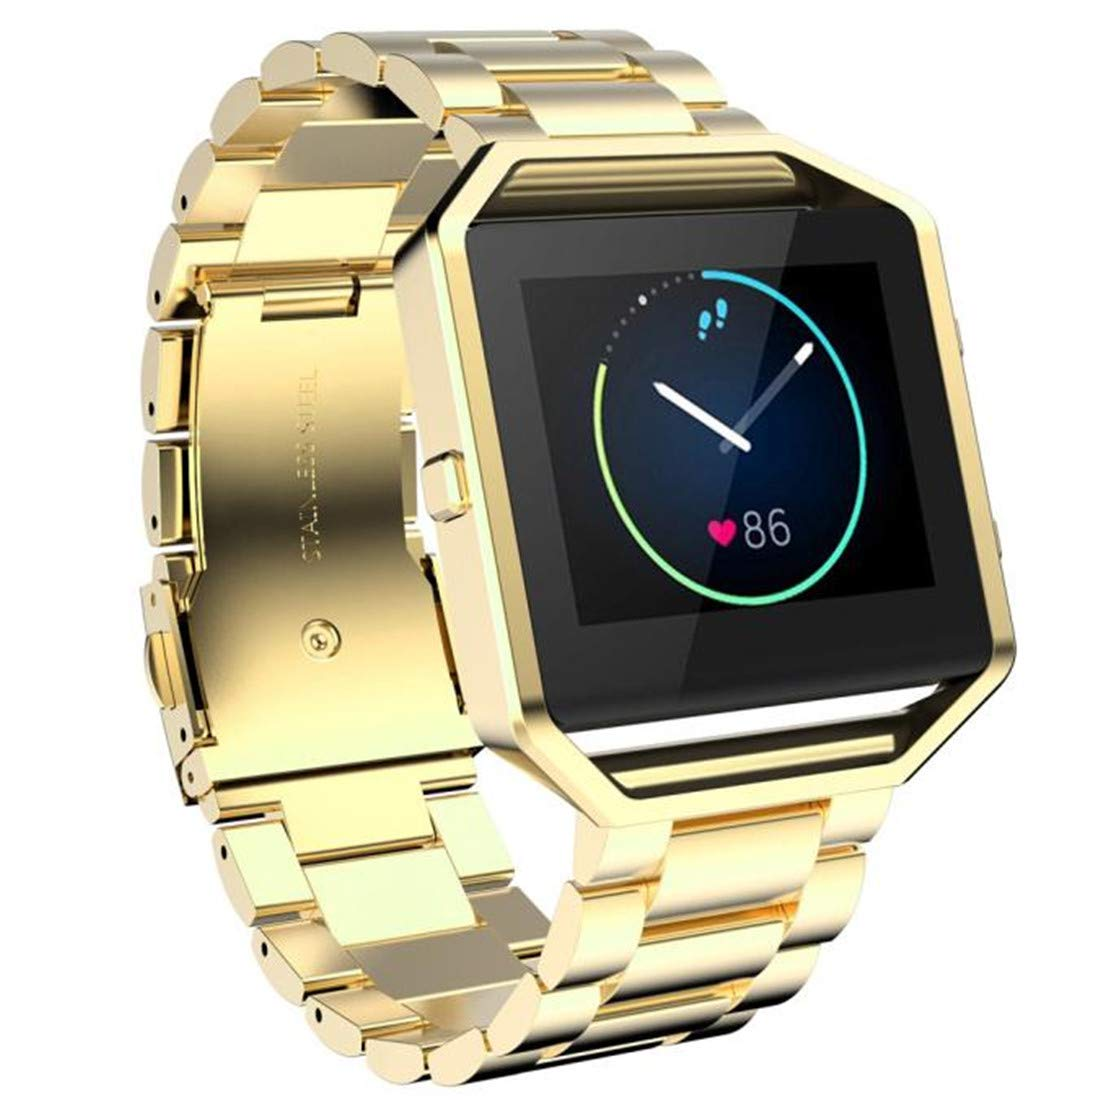 Amazon.com: Stailess Steel Bracelet Strap Watch Band for Fitbit Blaze Smart Watch Gold: Clothing